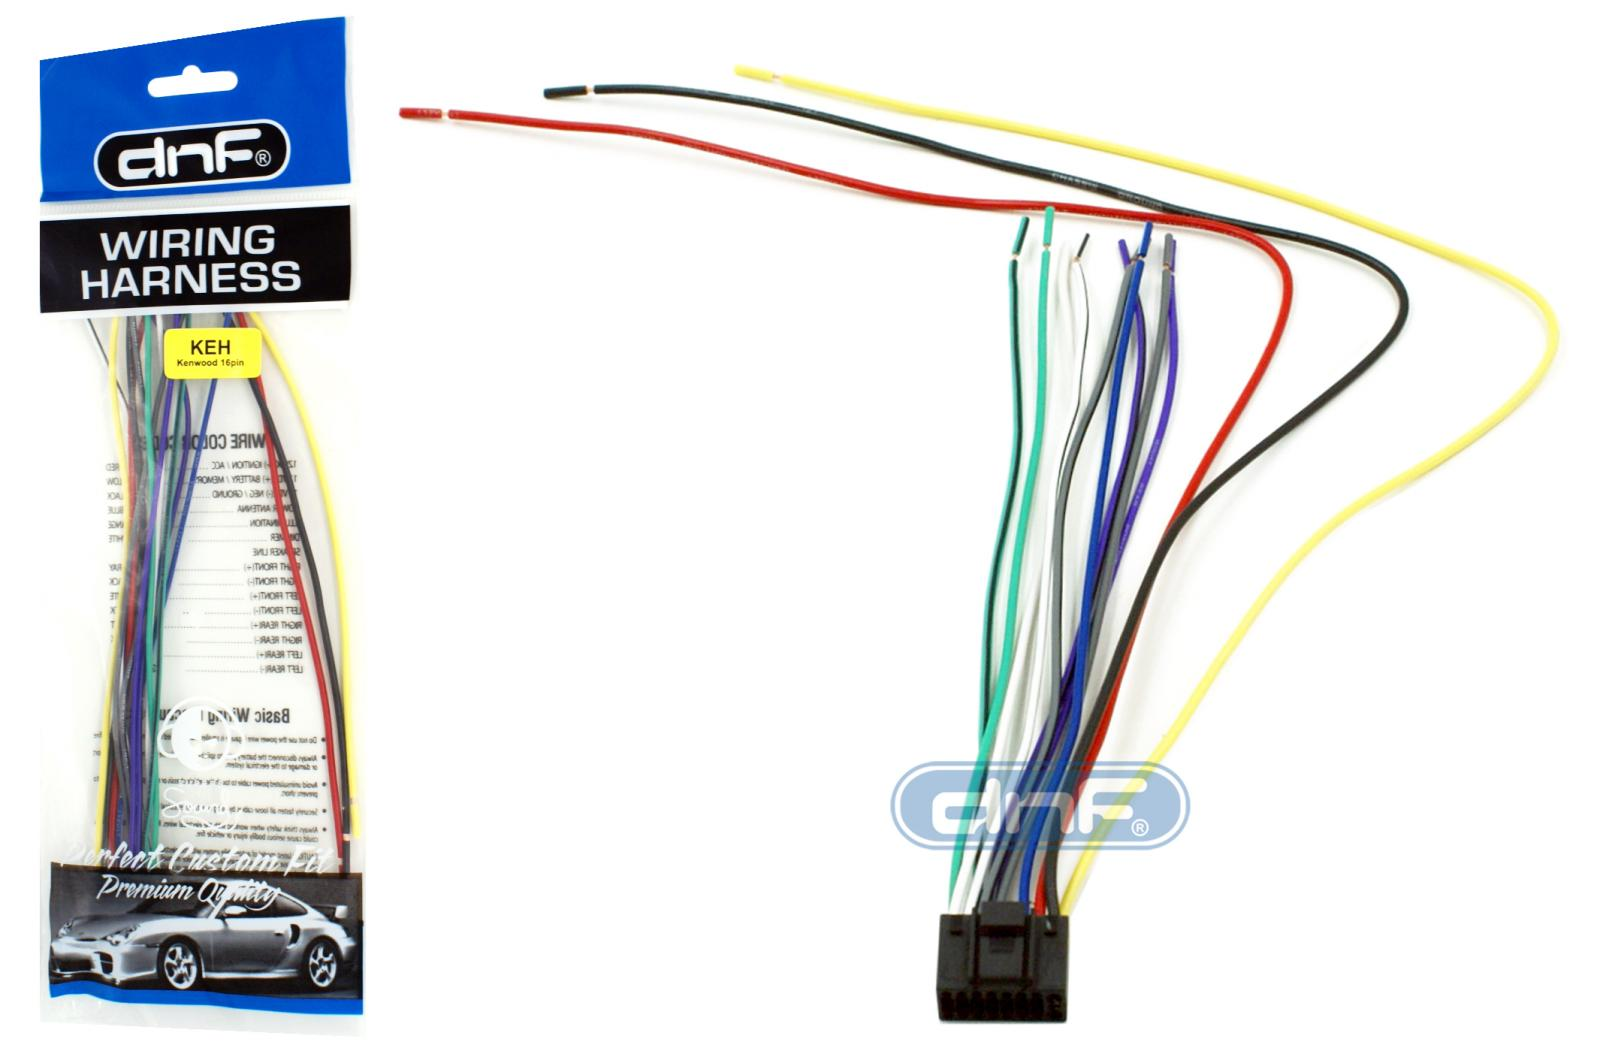 [DIAGRAM_38ZD]  7CE4 Kenwood Kdc 300 Cd Player Wiring Diagram | Wiring Library | Kenwood Wiring Diagrams |  | Wiring Library